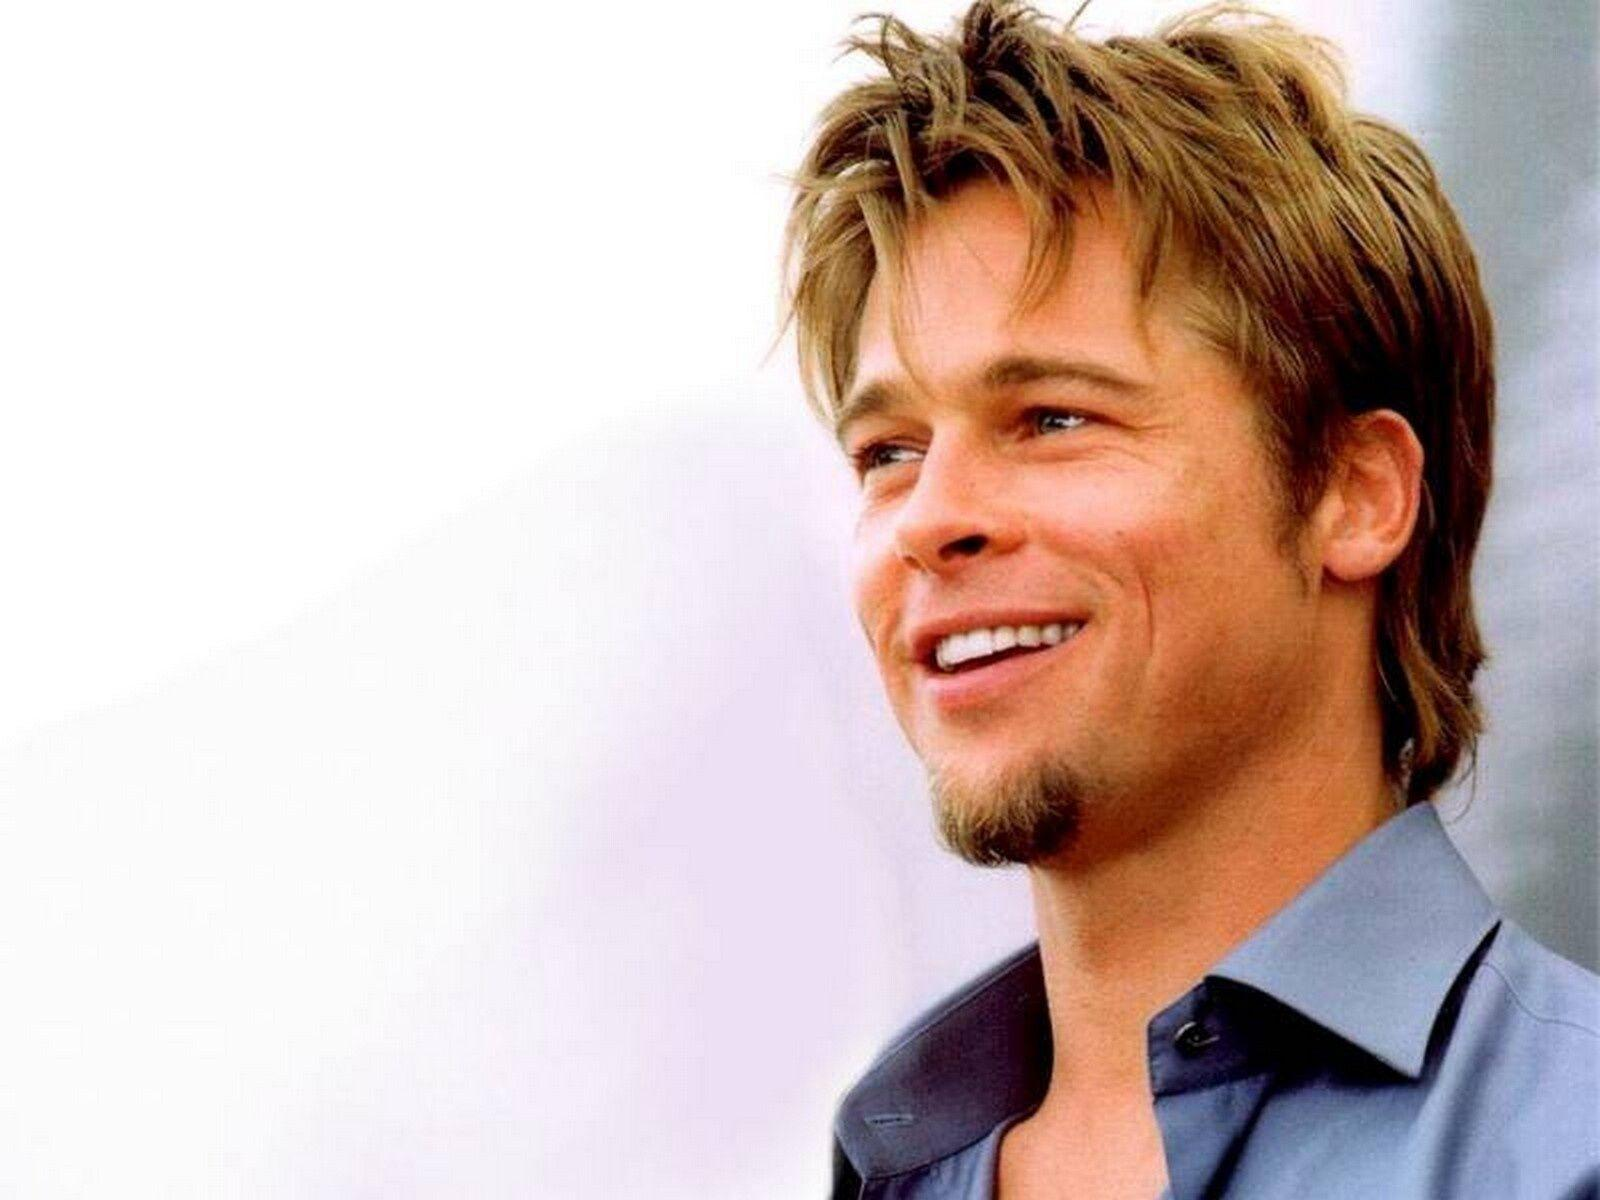 Brad Pitt Images 6 HD Wallpapers | www.freehighresolutionimages.org